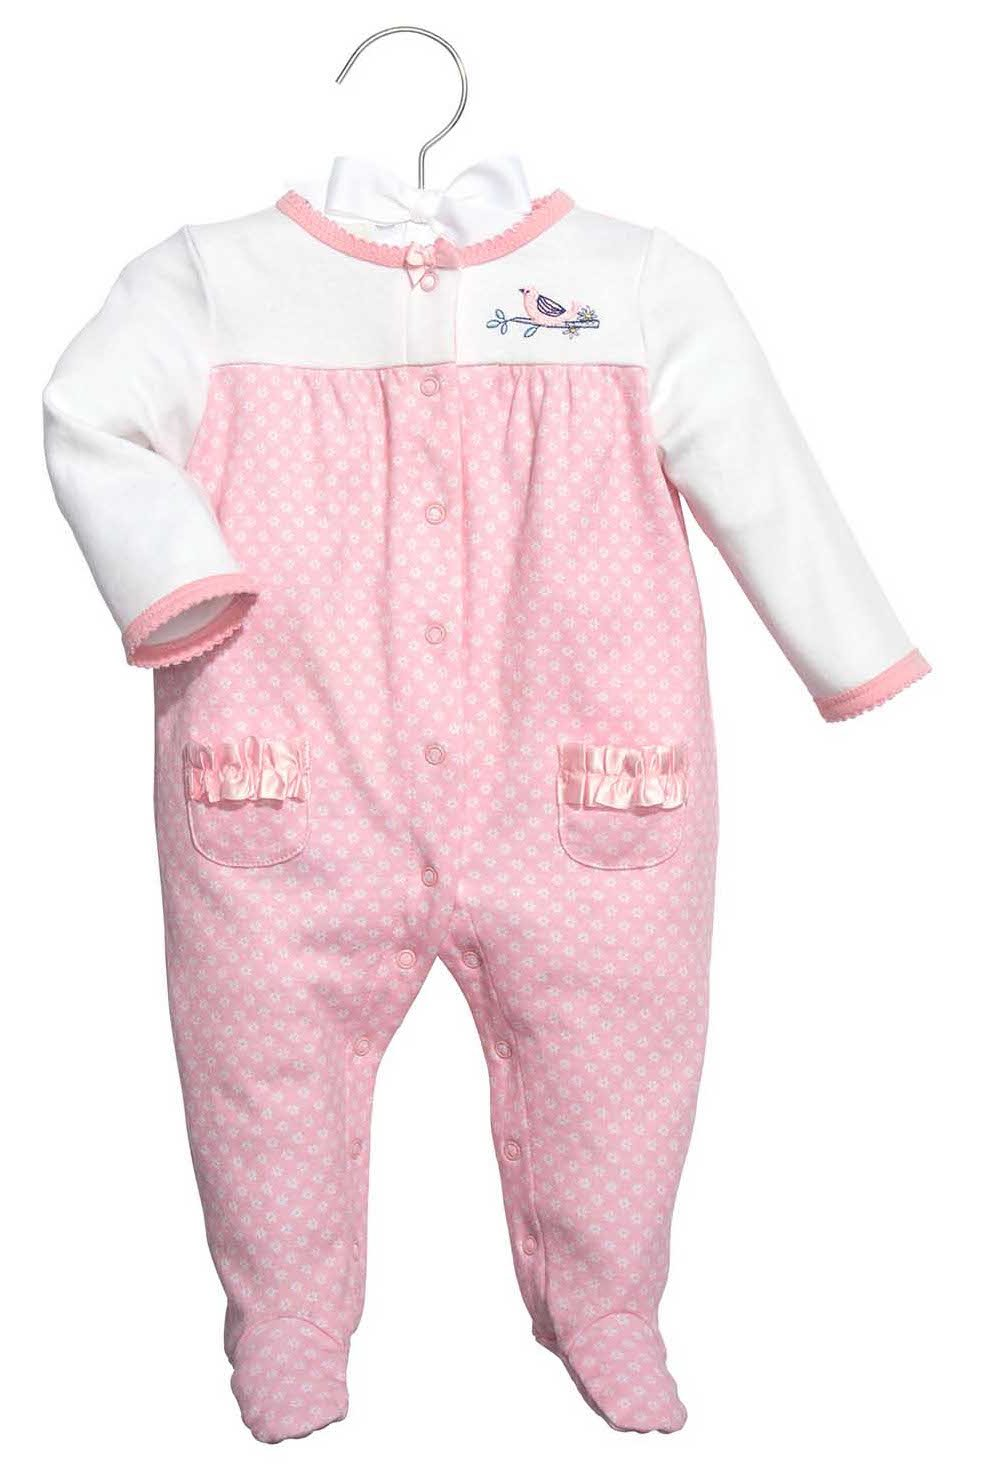 C.R. Gibson Footed Sleep and Play Set, Fits Size 0-3 Months, Little Birdie